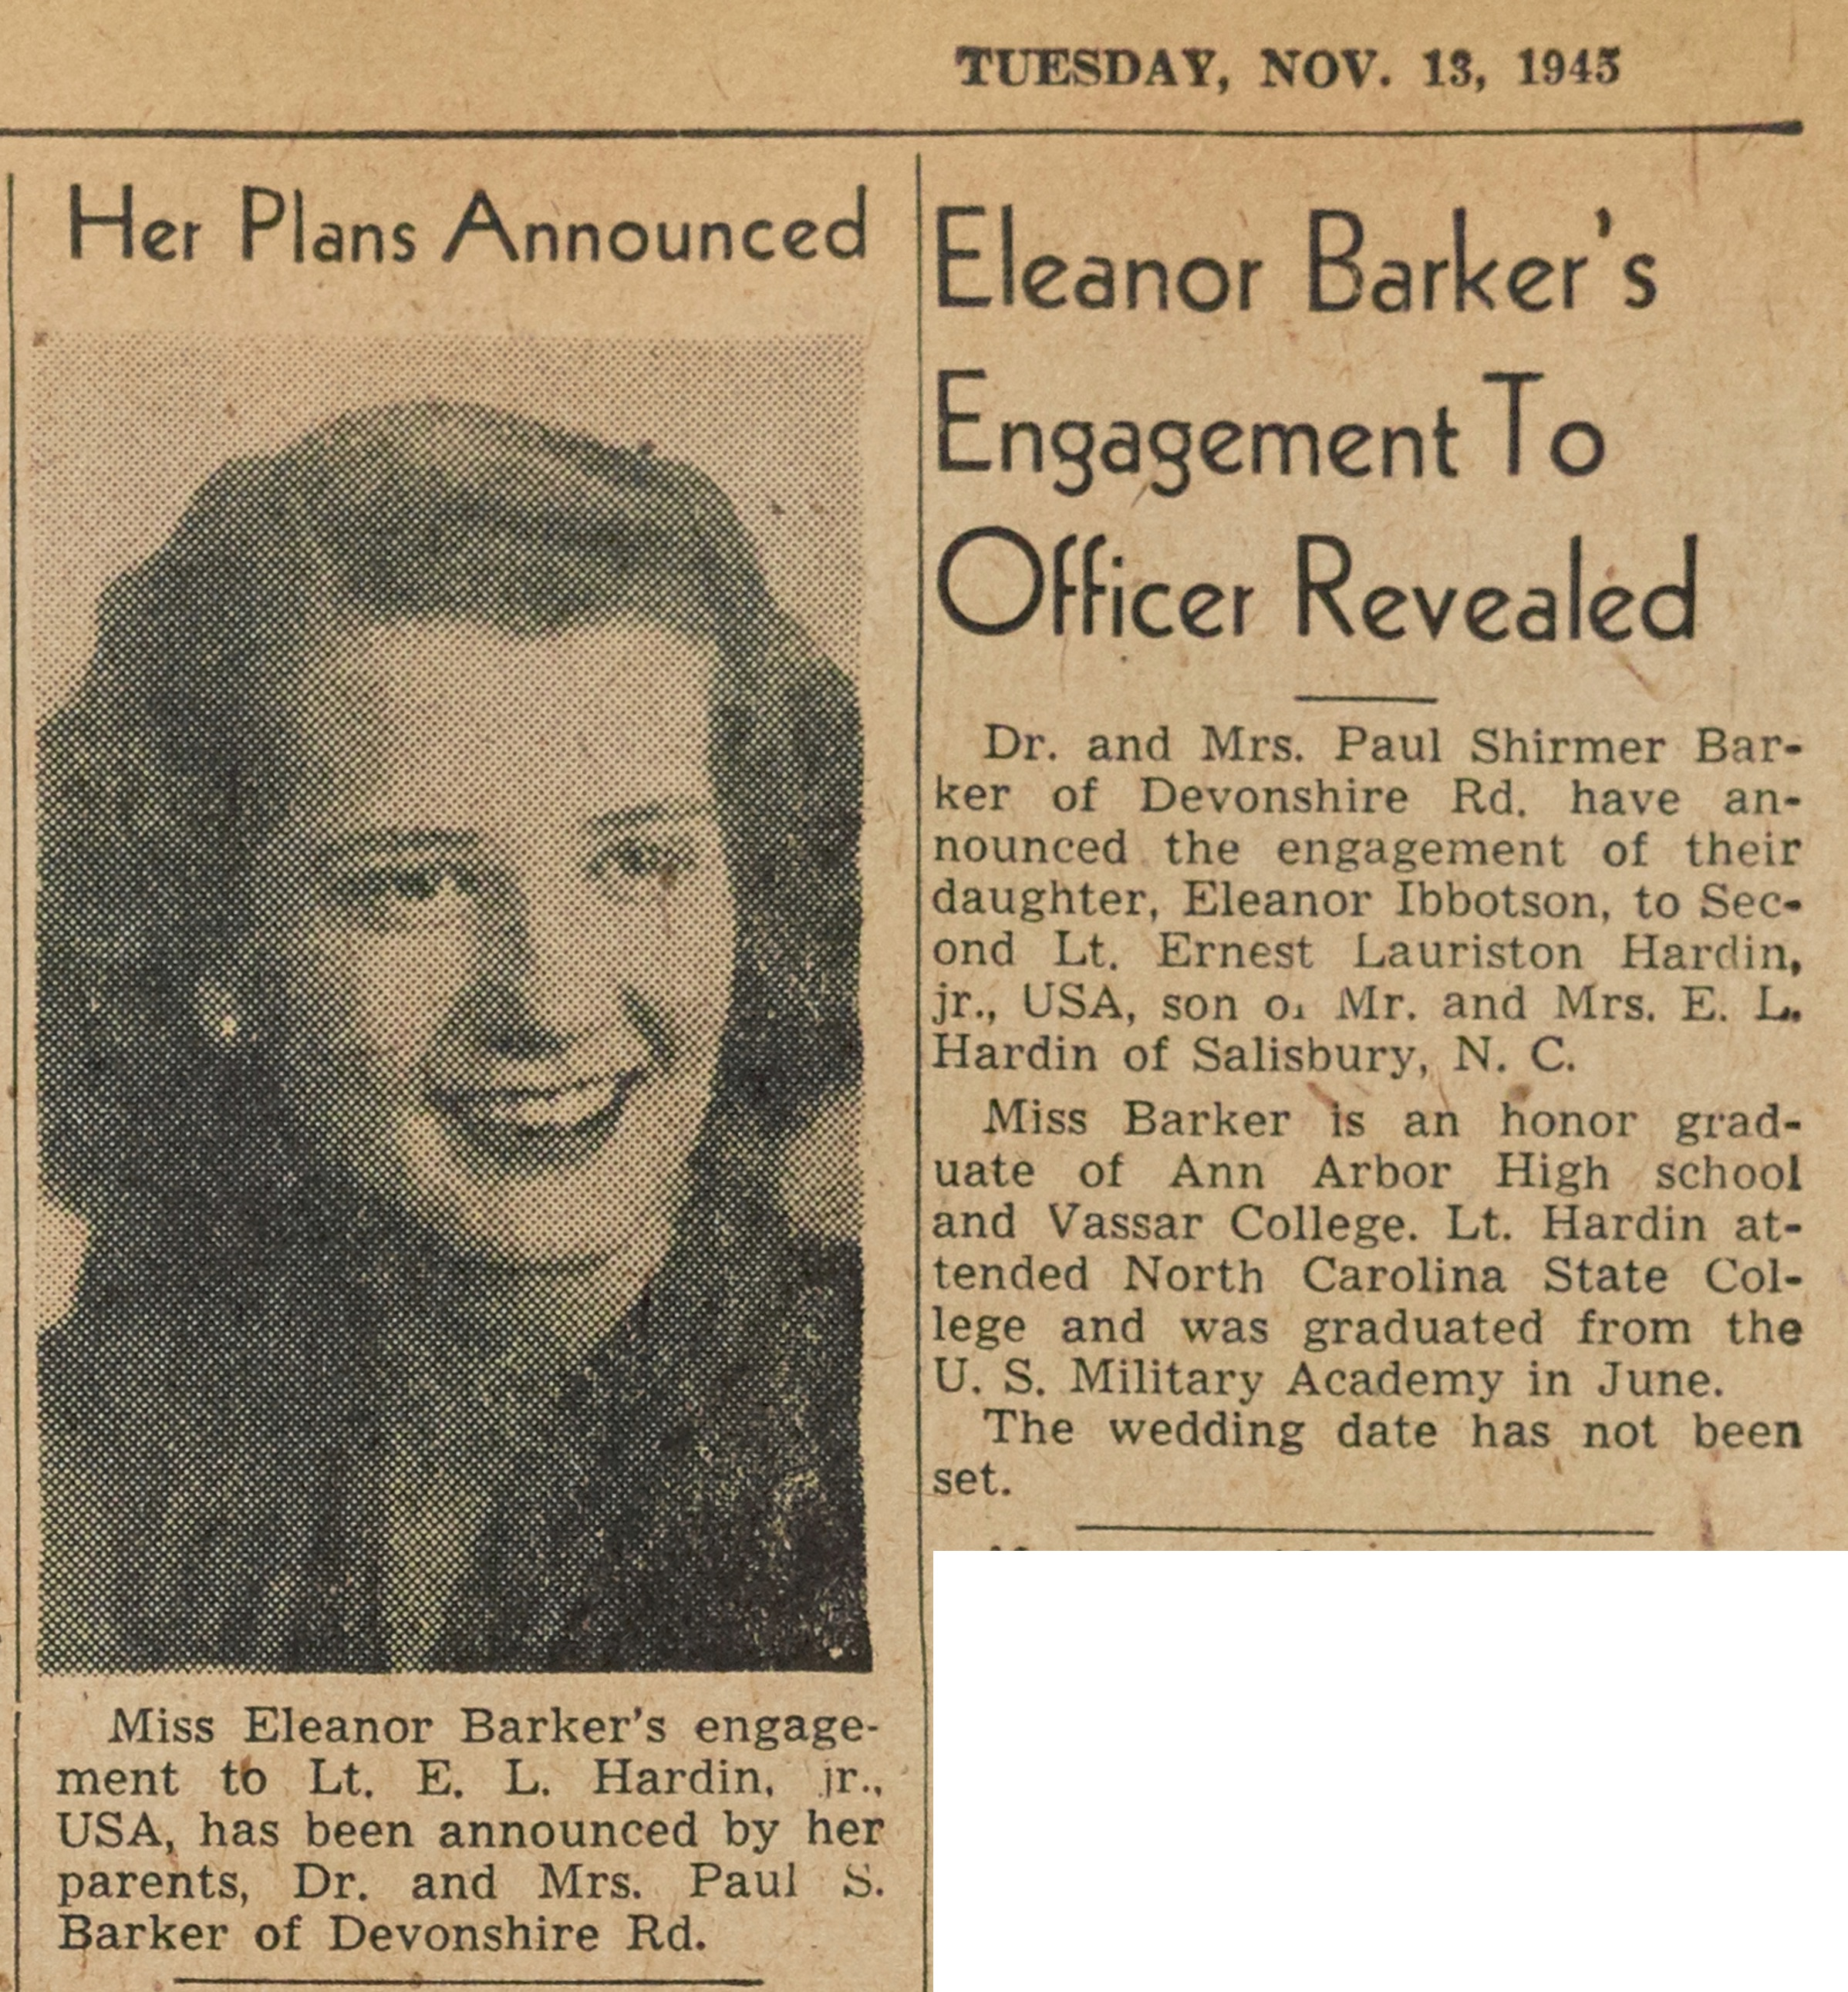 Eleanor Barker's Engagement To Officer Revealed image